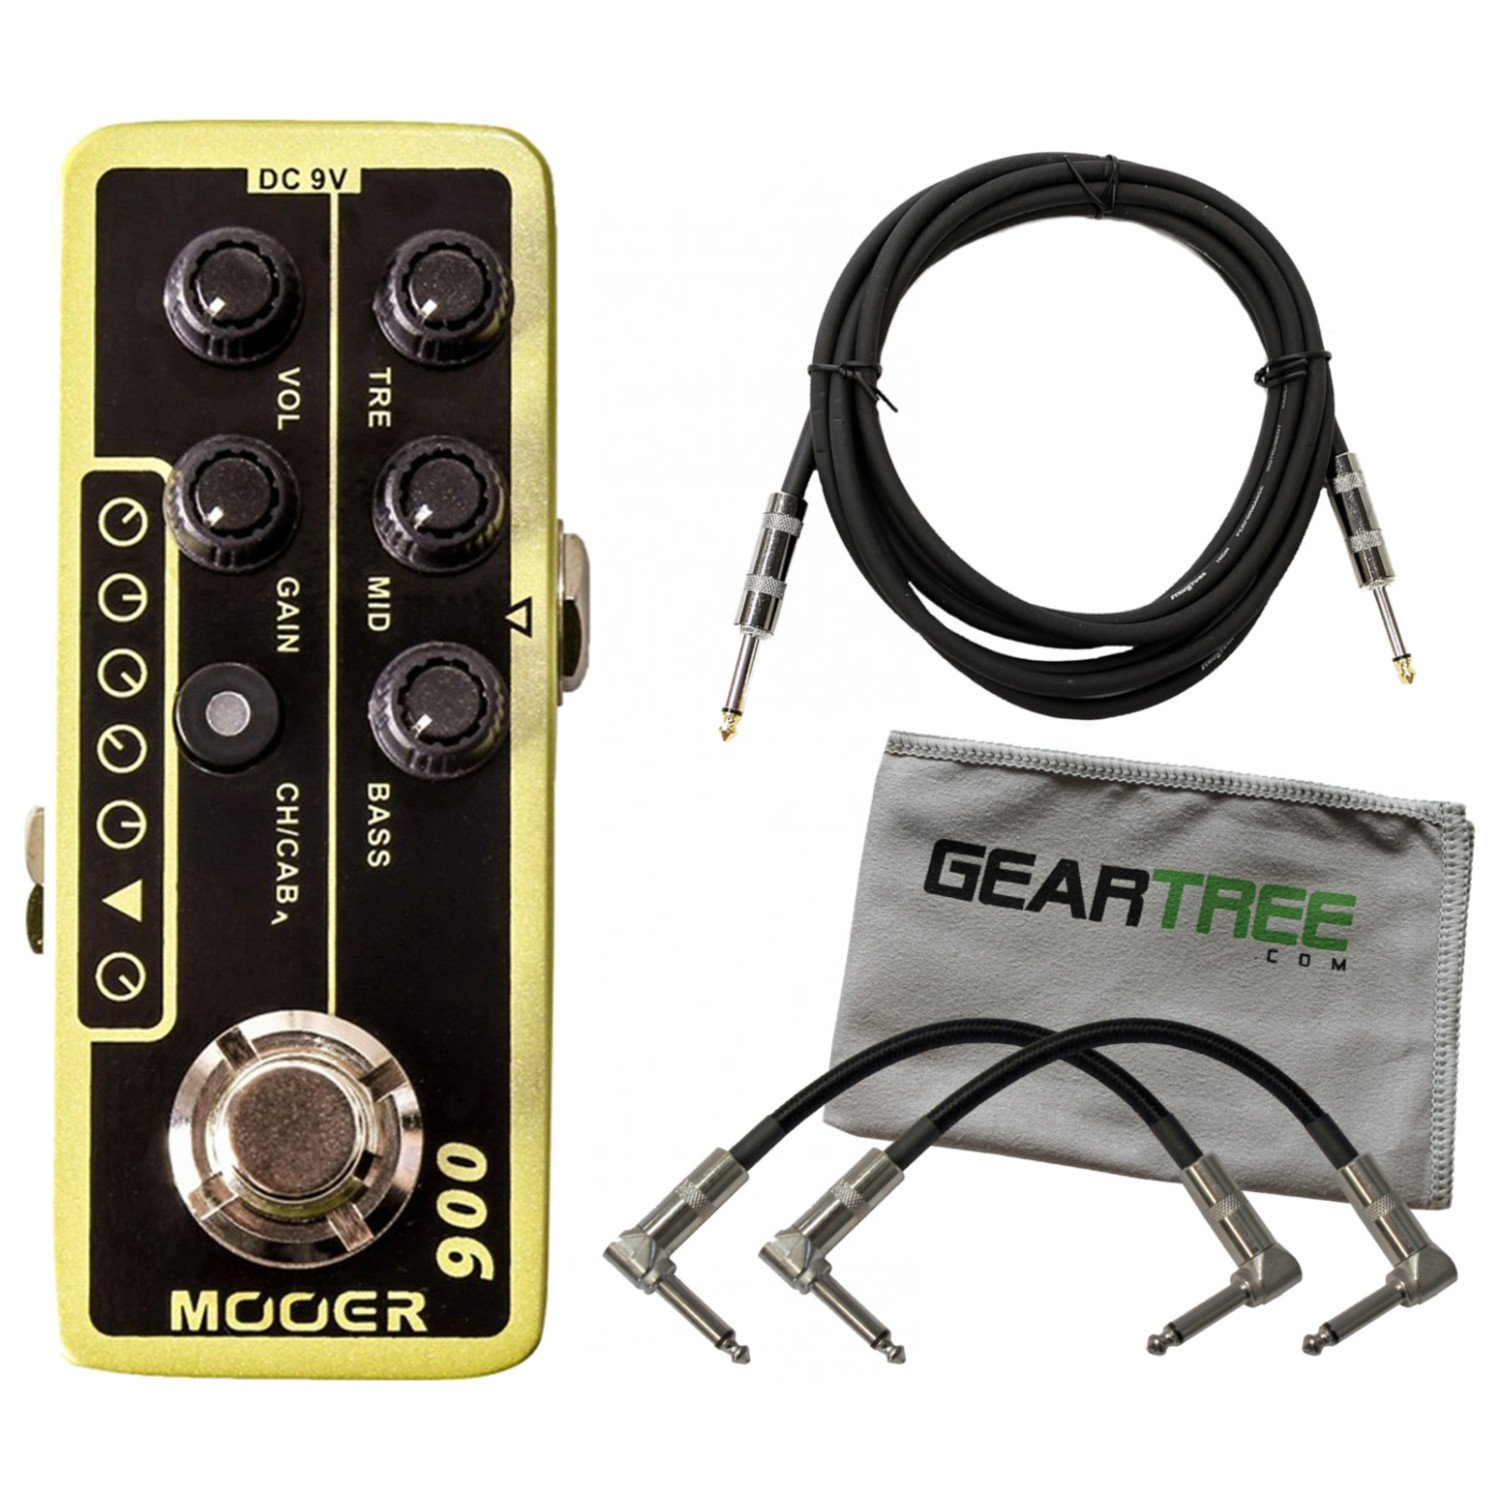 Mooer Micro Preamp 006 based on Fender blues deluxe w/3 Cables and Geartree Clo